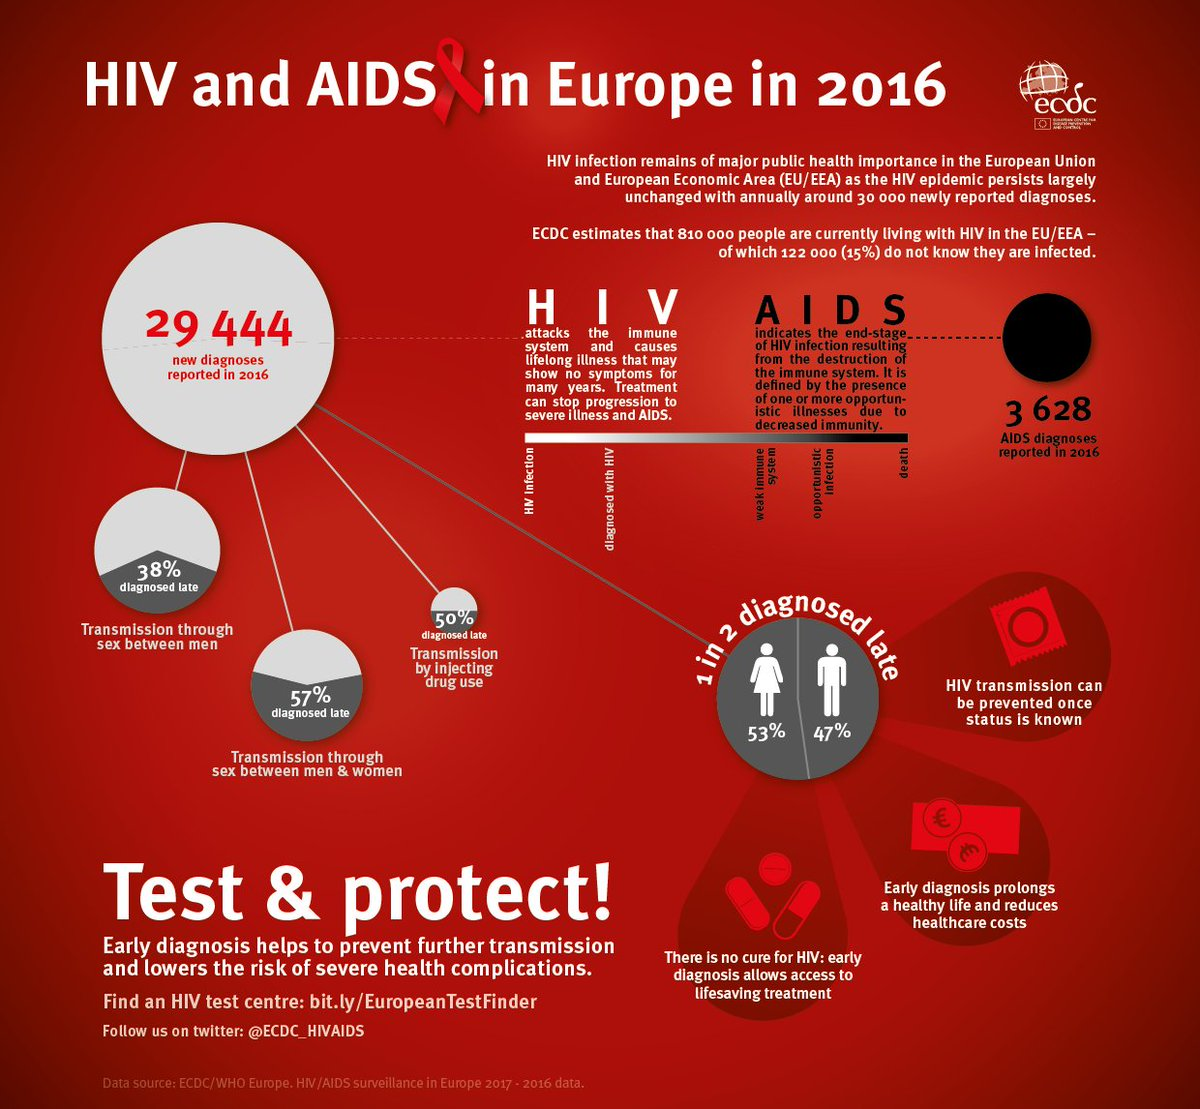 aids treatment in europe - HD2480×2291